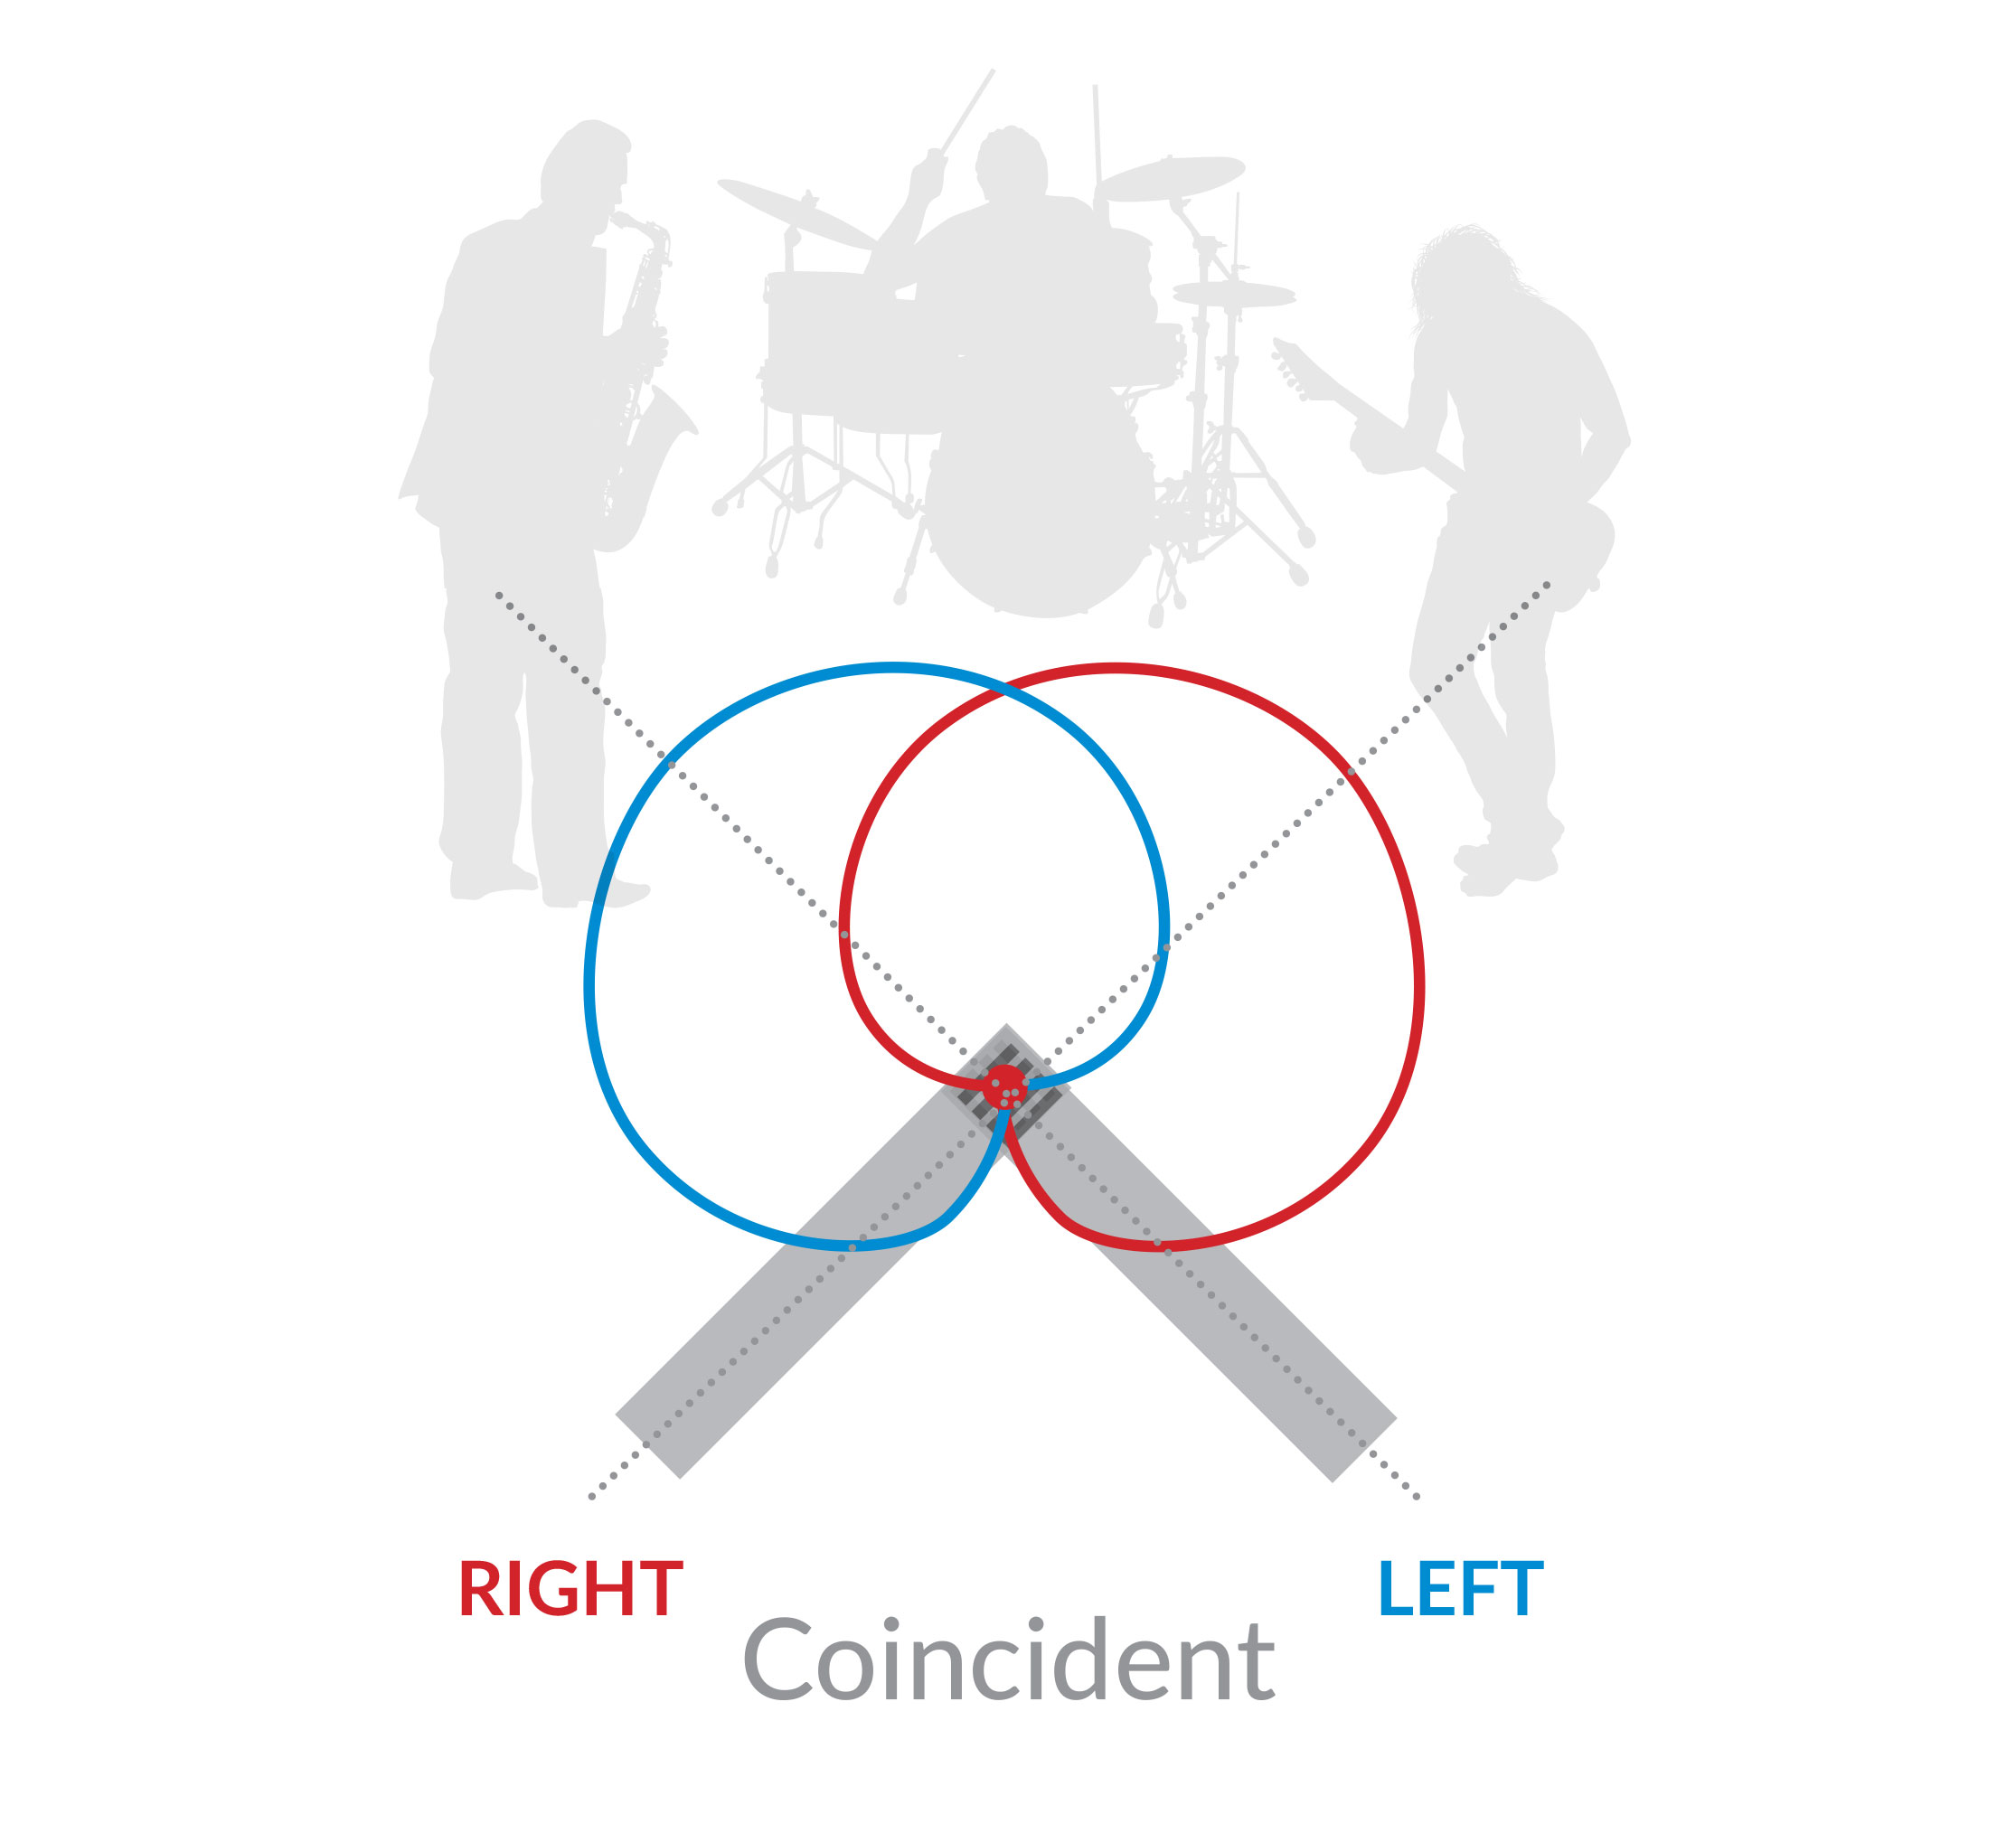 MS Patterns COINCIDENT